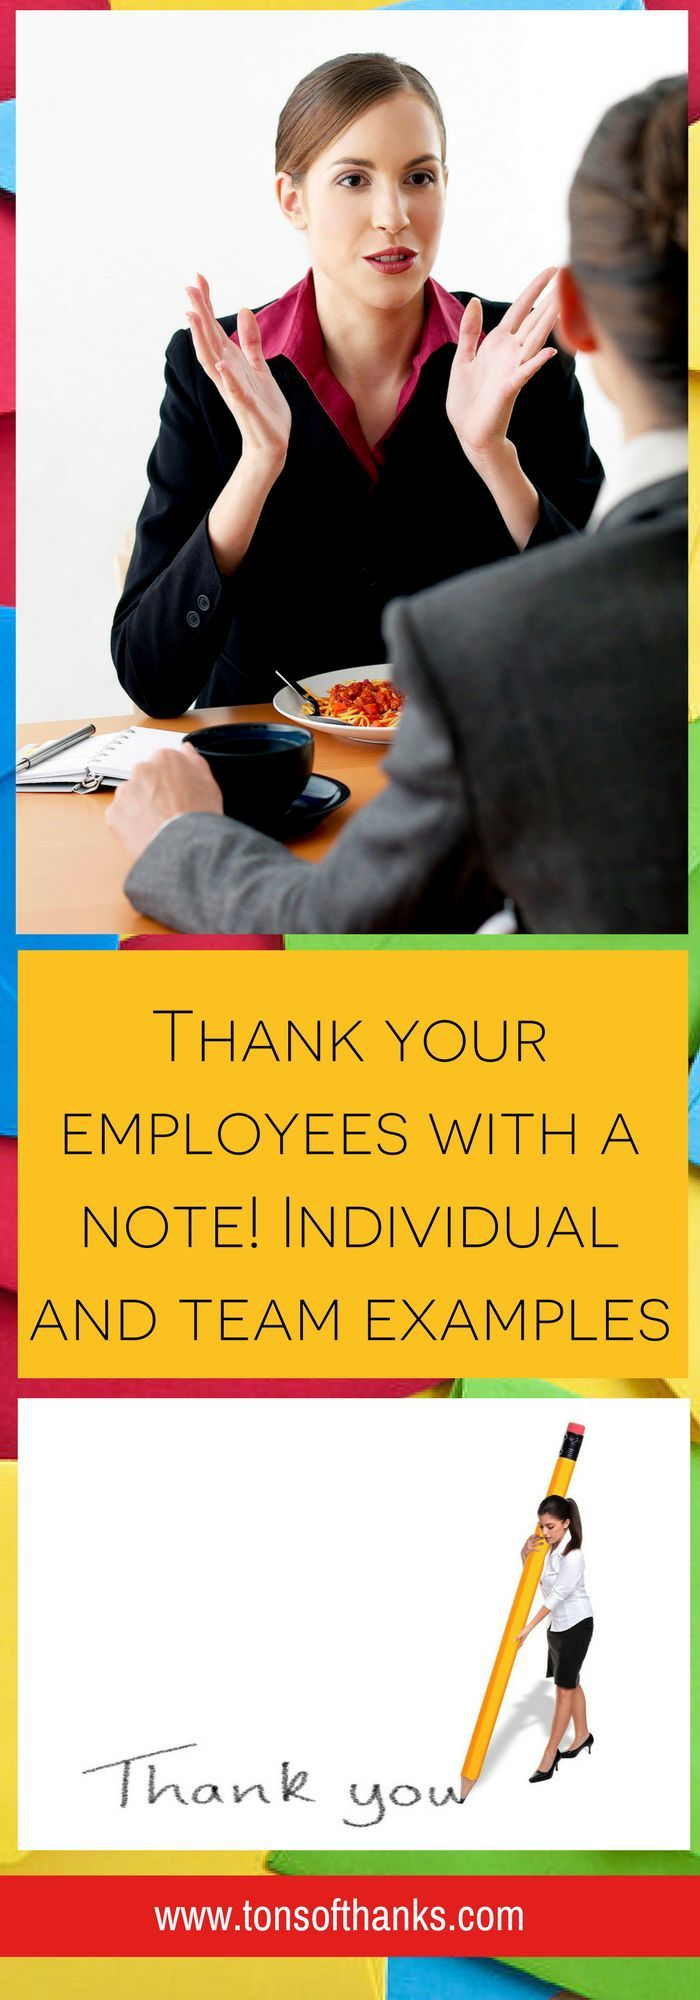 Send your employees a thank you message